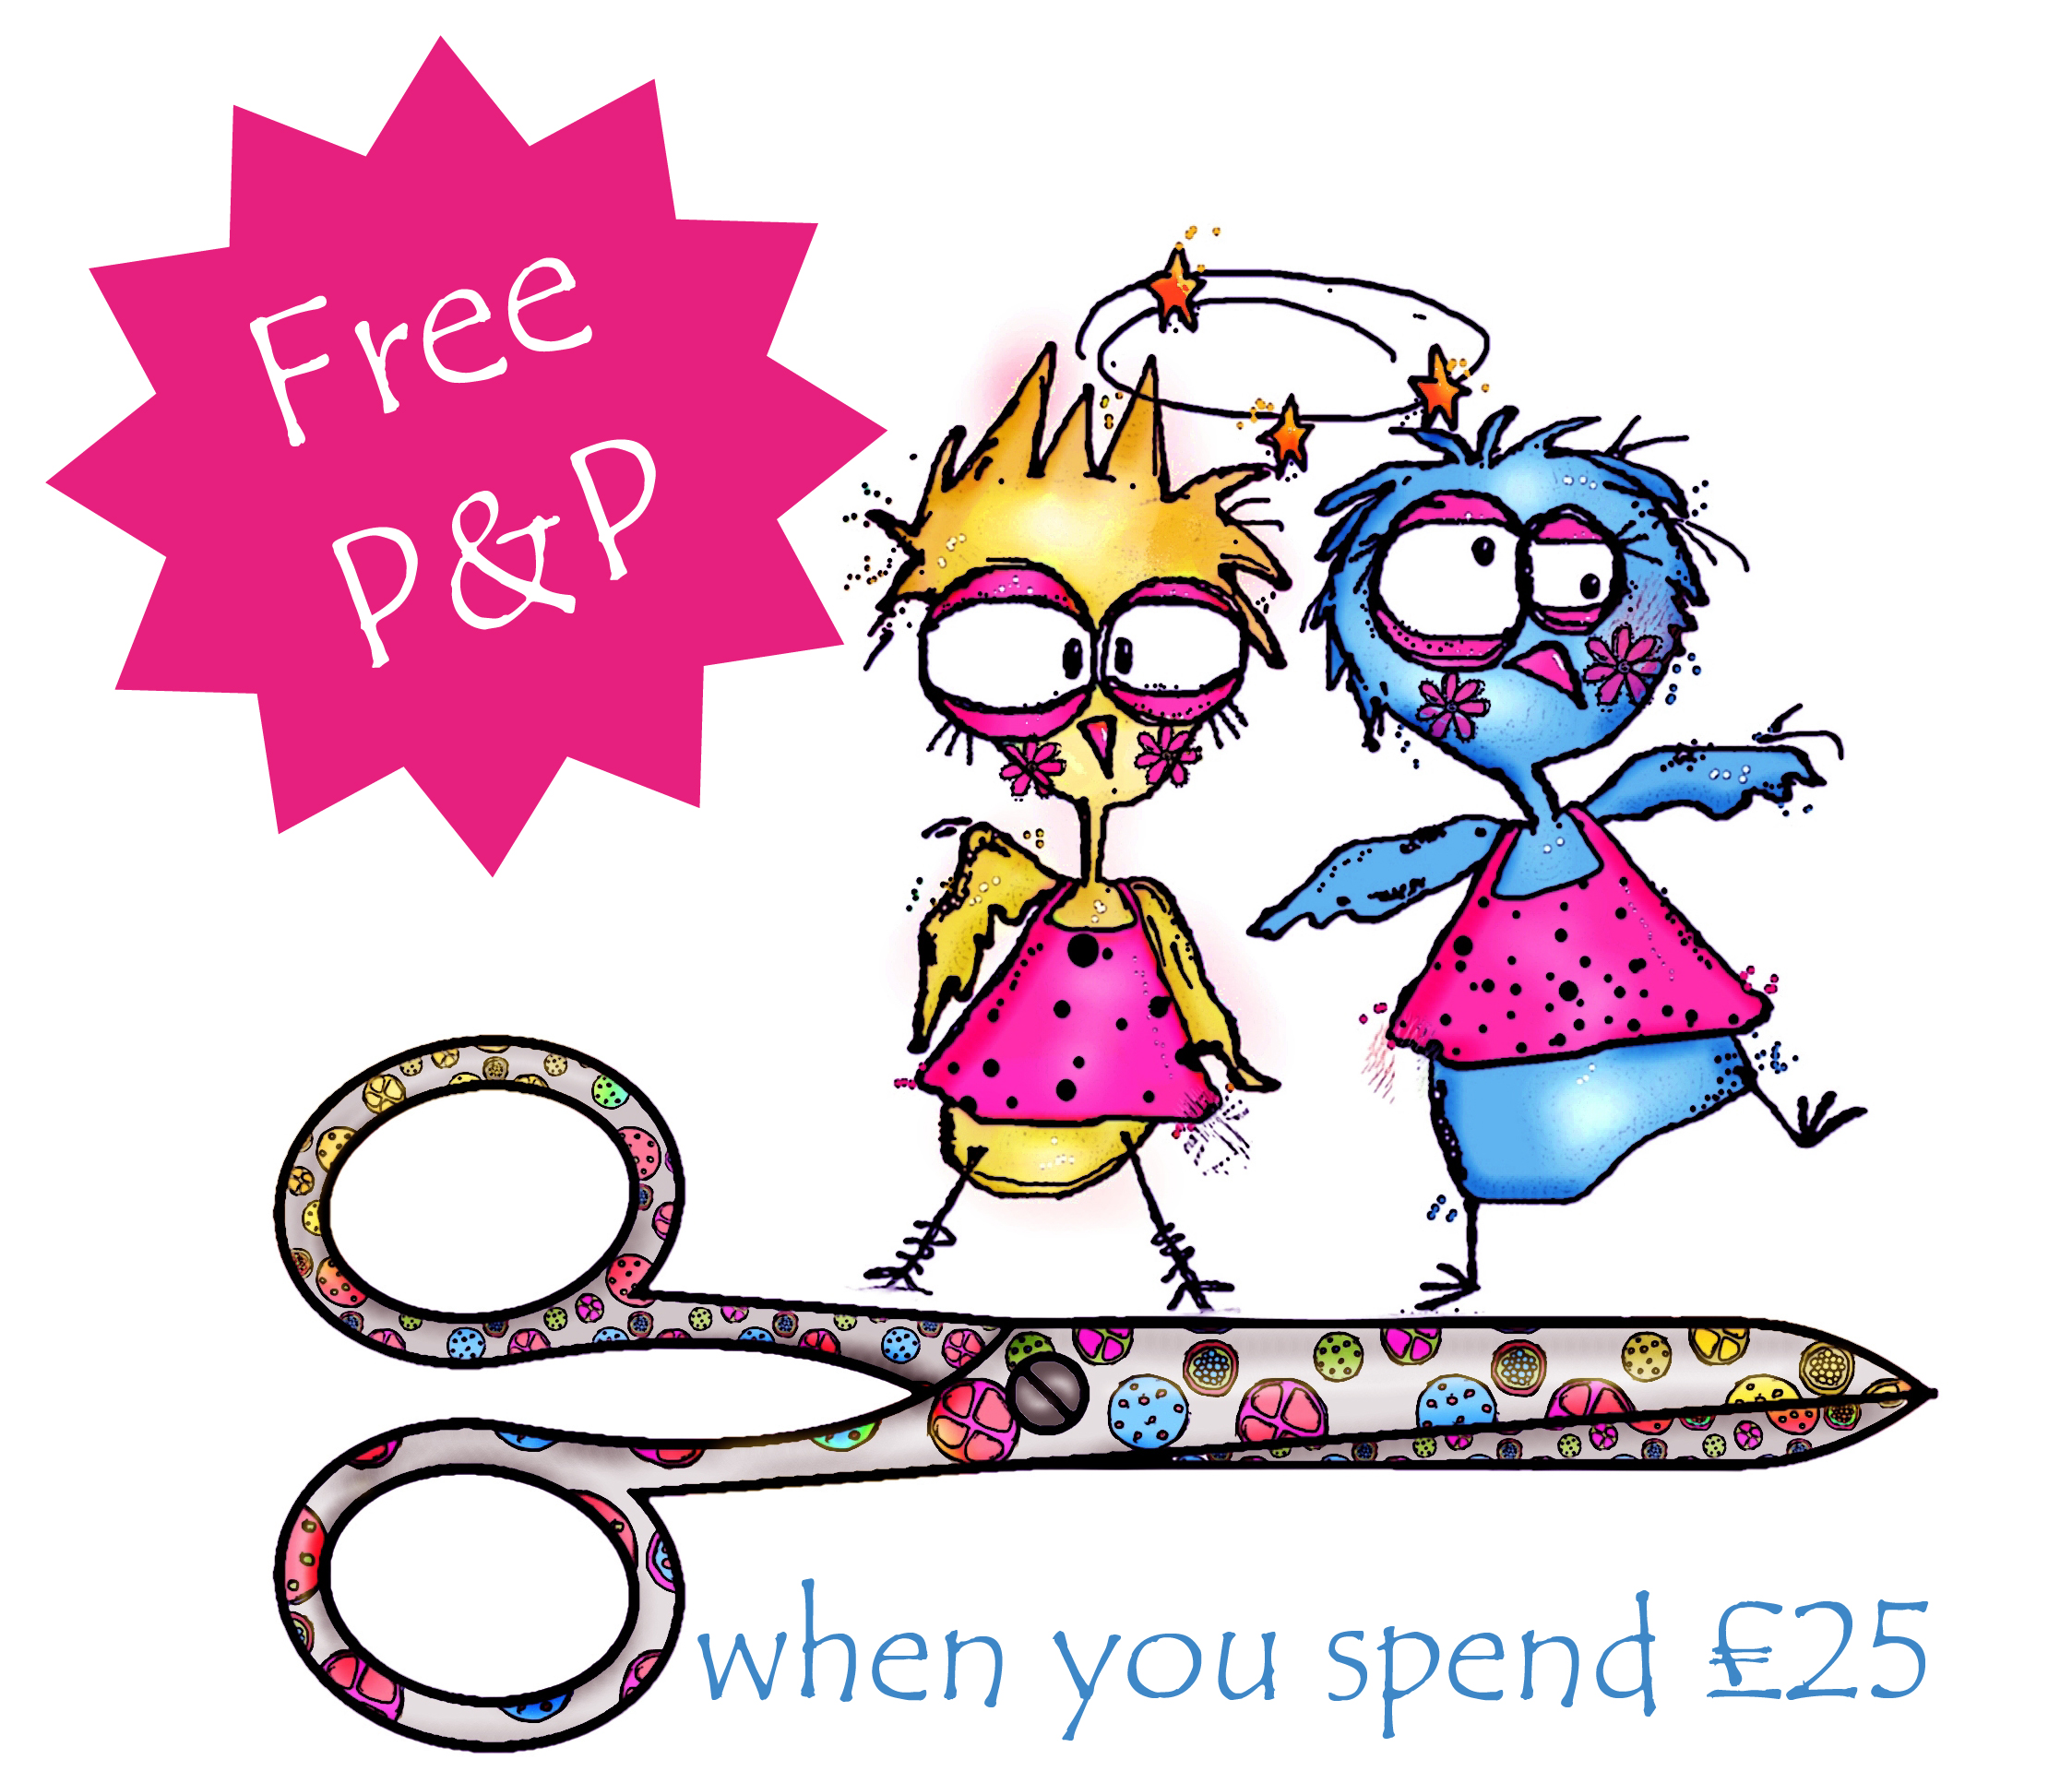 Free P&P when you spend £25